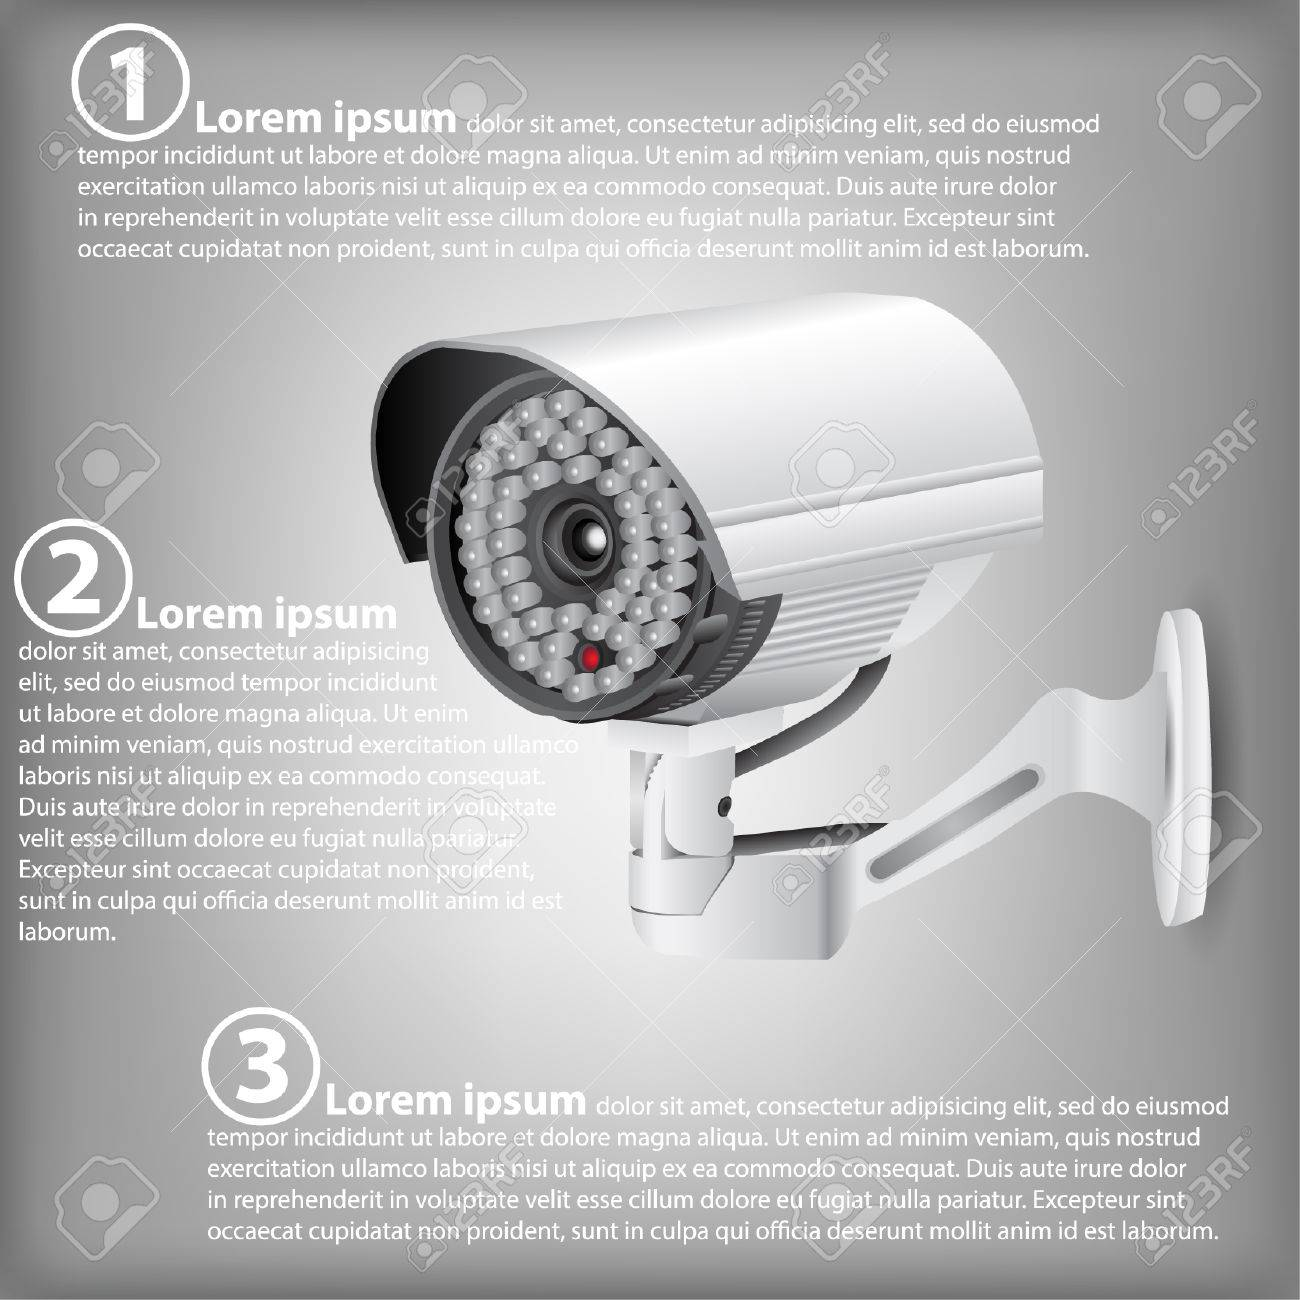 hight resolution of infographic diagram of cctv security camera vector illustration eps 10 for business and technology